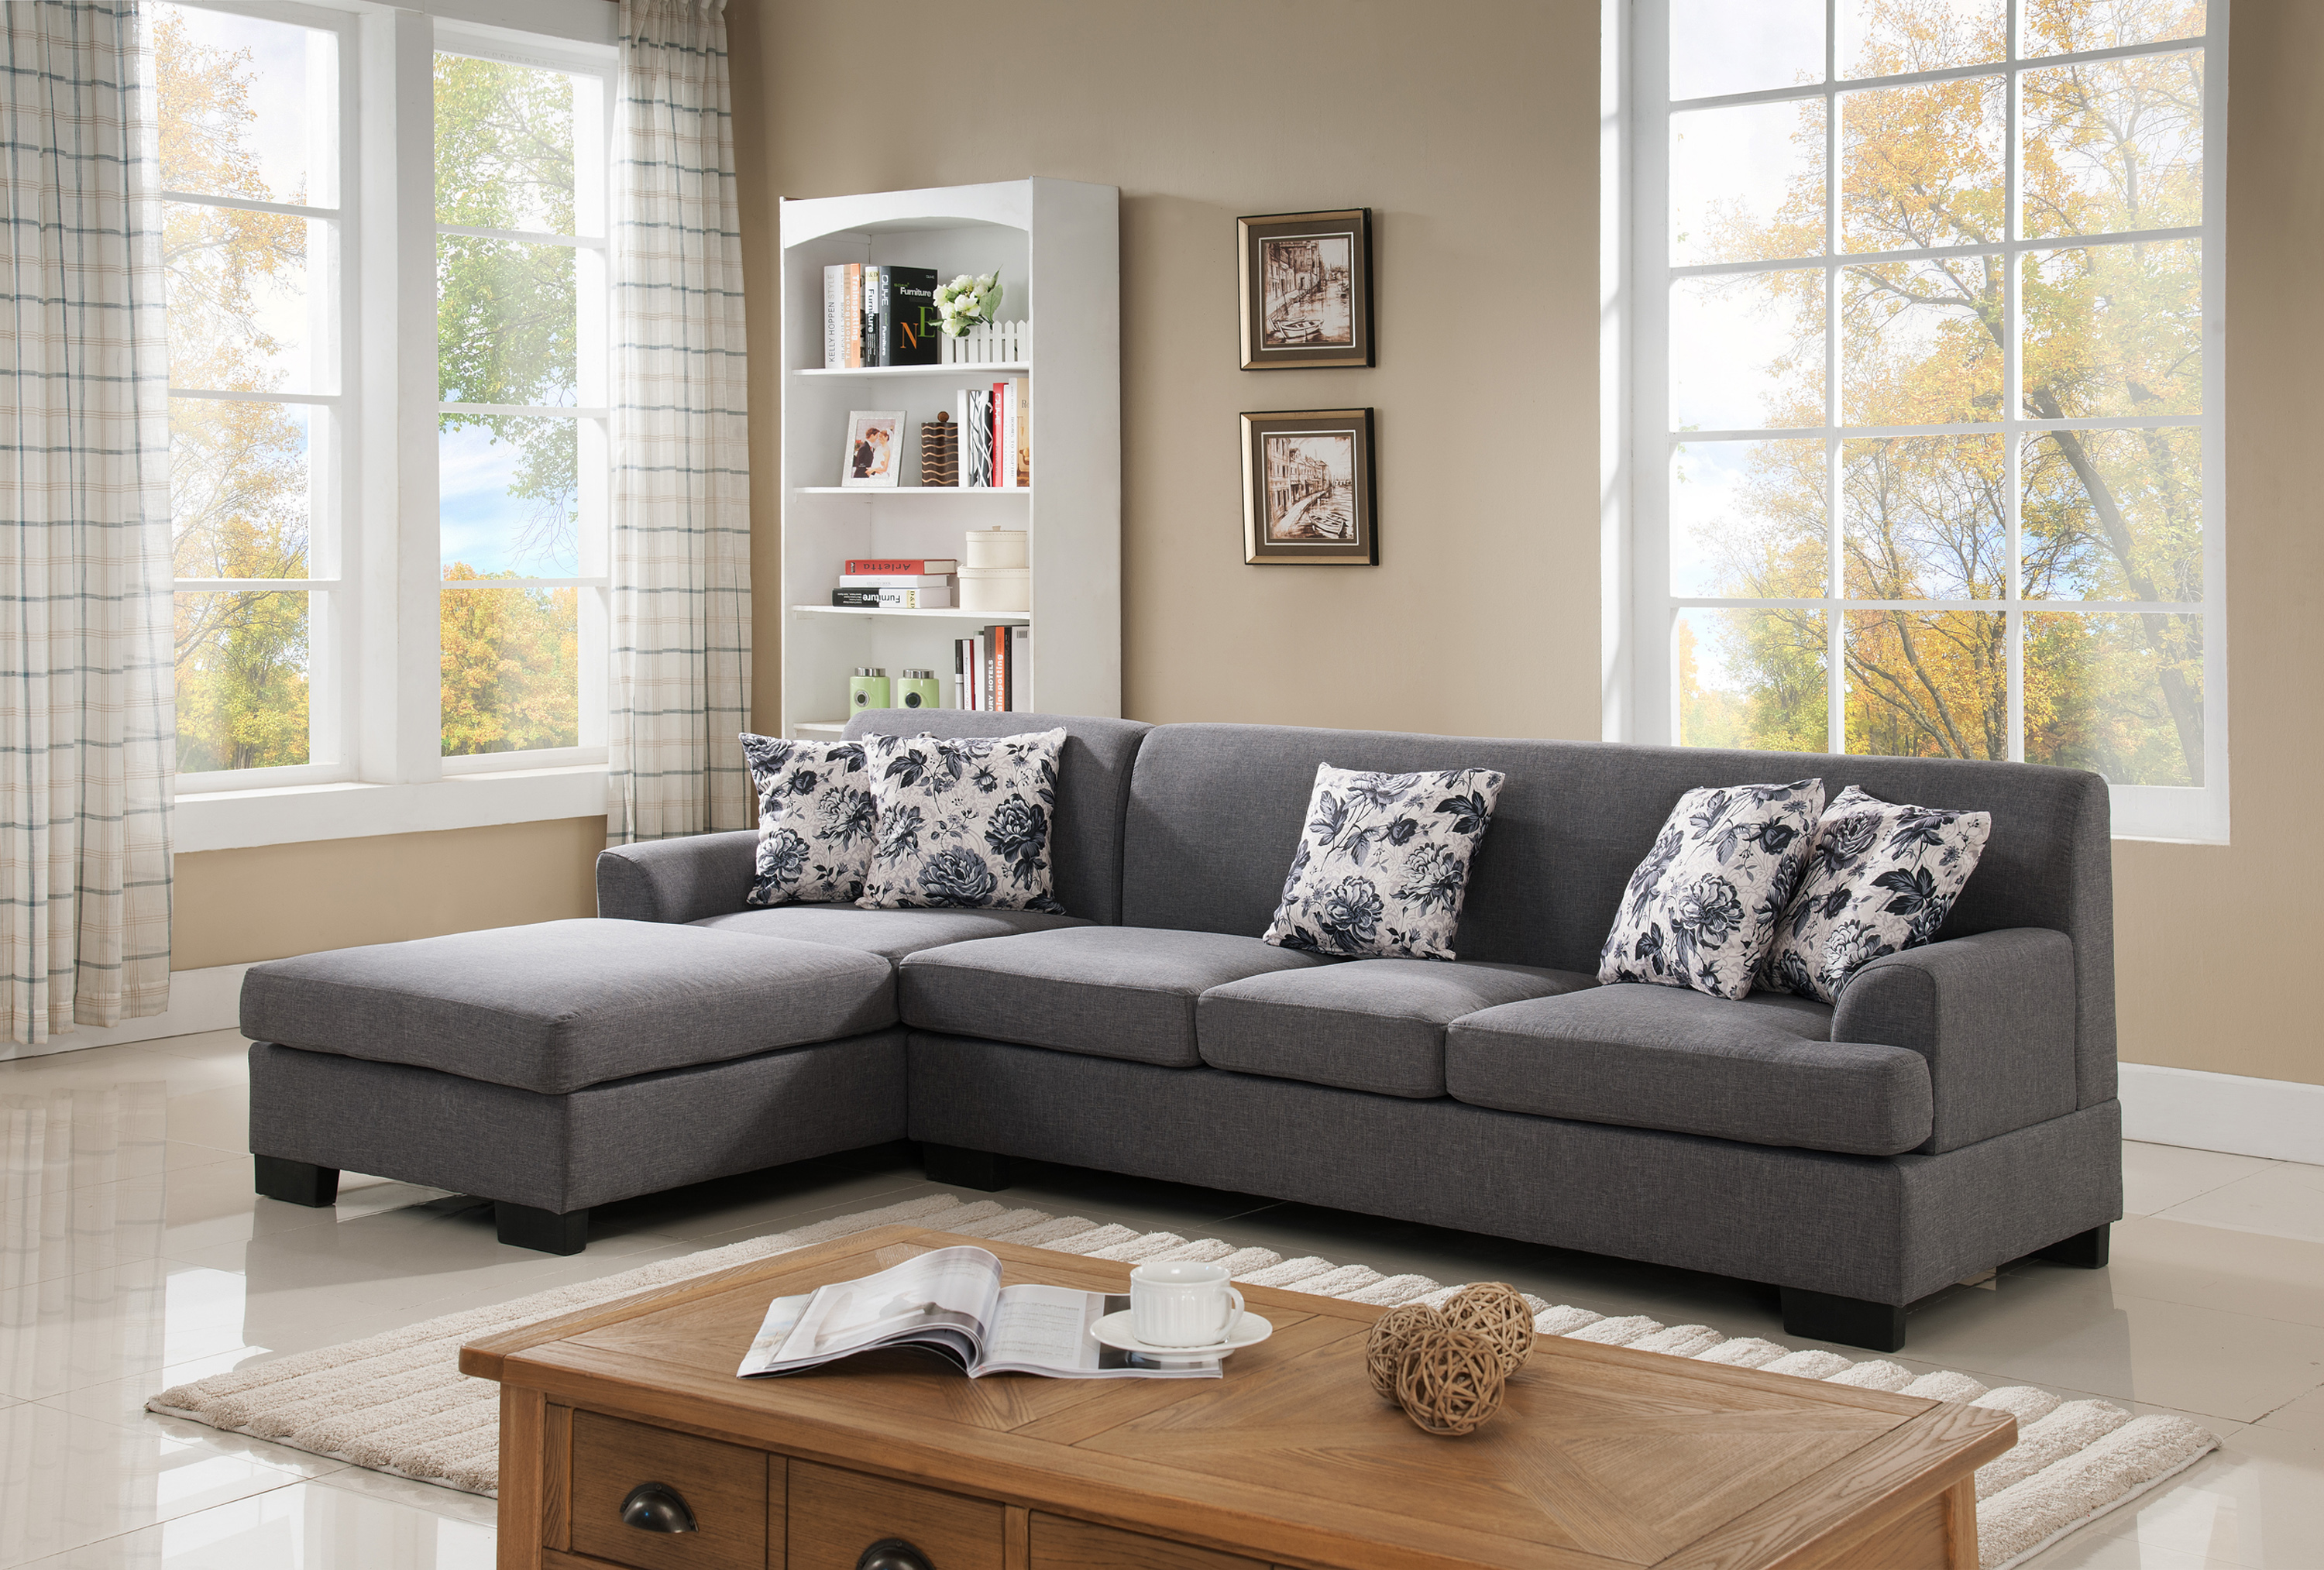 Allen Modern Fabric Upholstered 2-Pc Configurable Left or Right Facing Sectional Sofa, Grey by US Pride Furniture